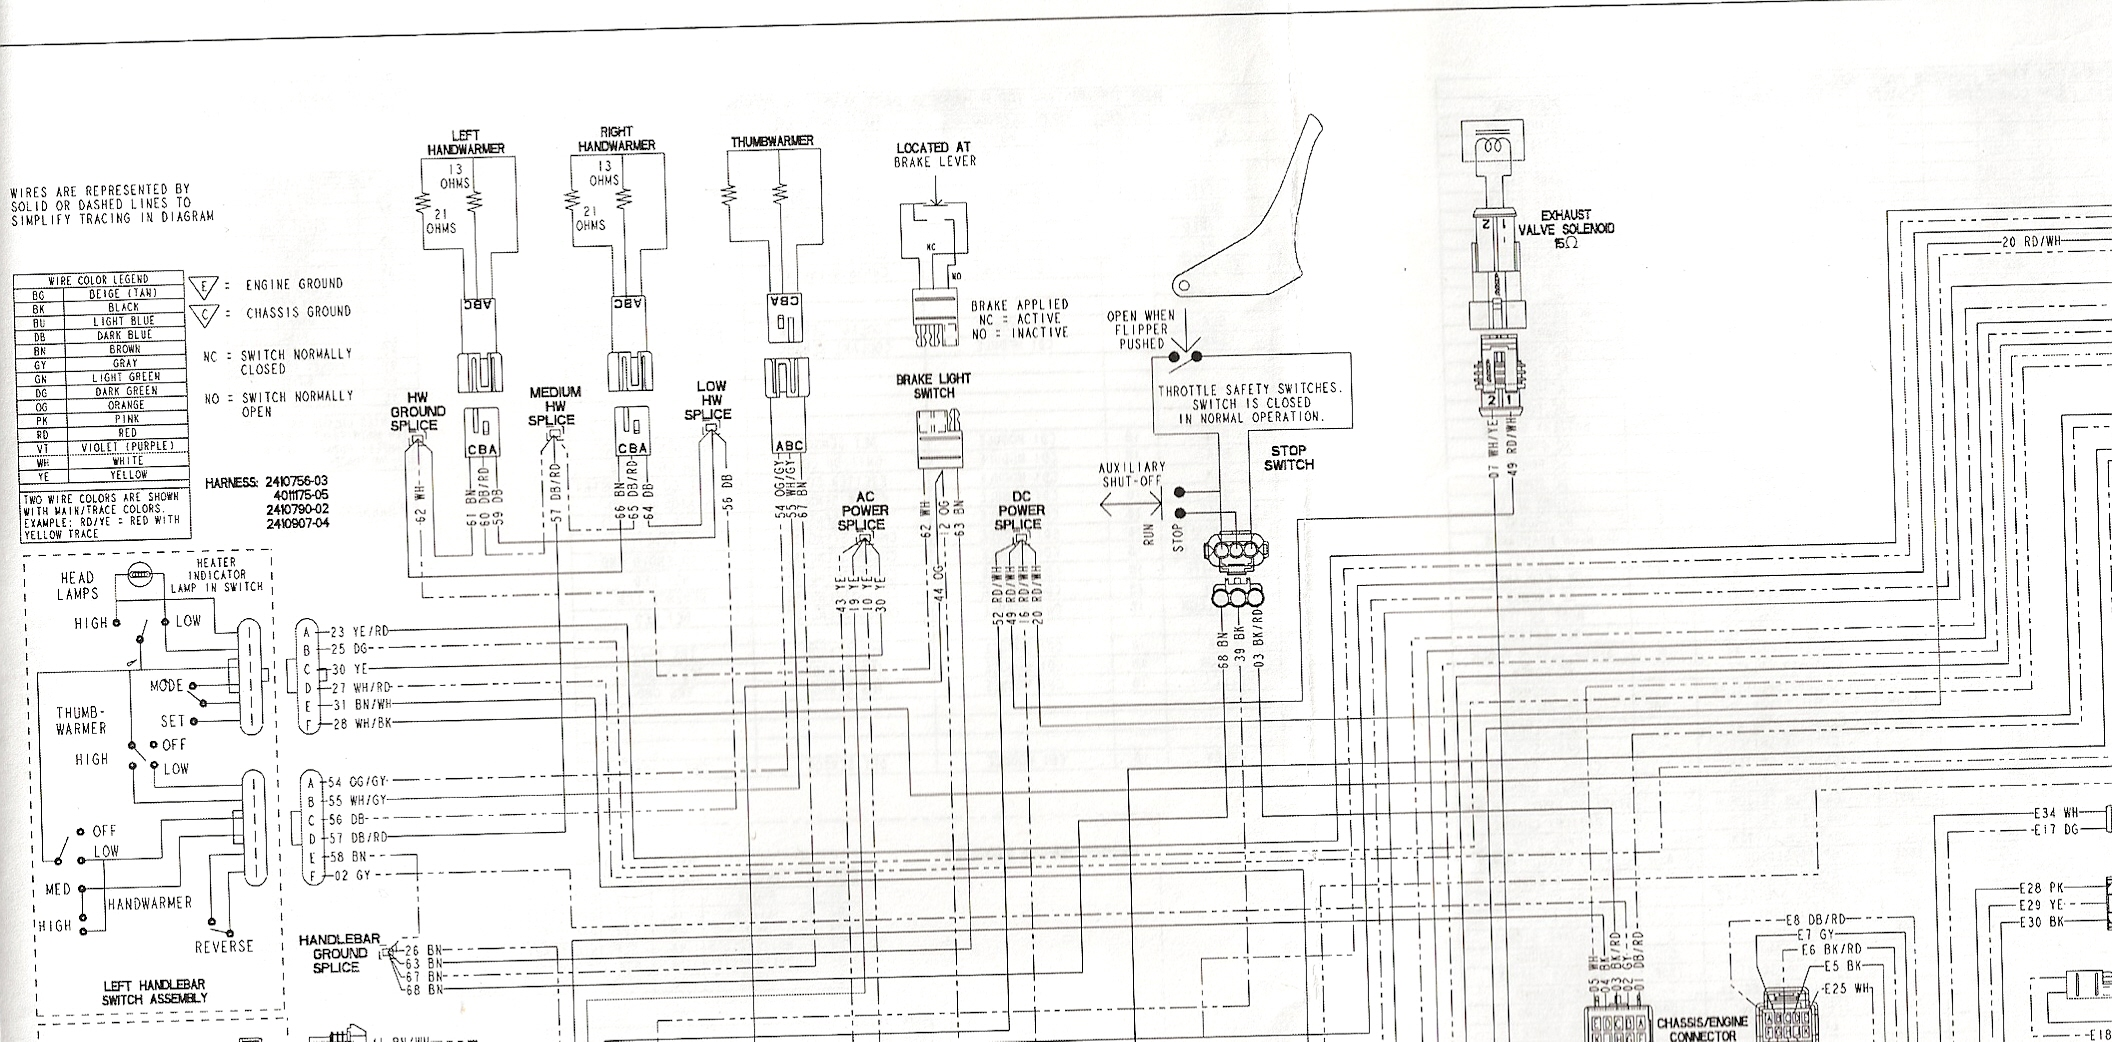 wiring diagram 1991 polaris indy 500  wiring  free engine